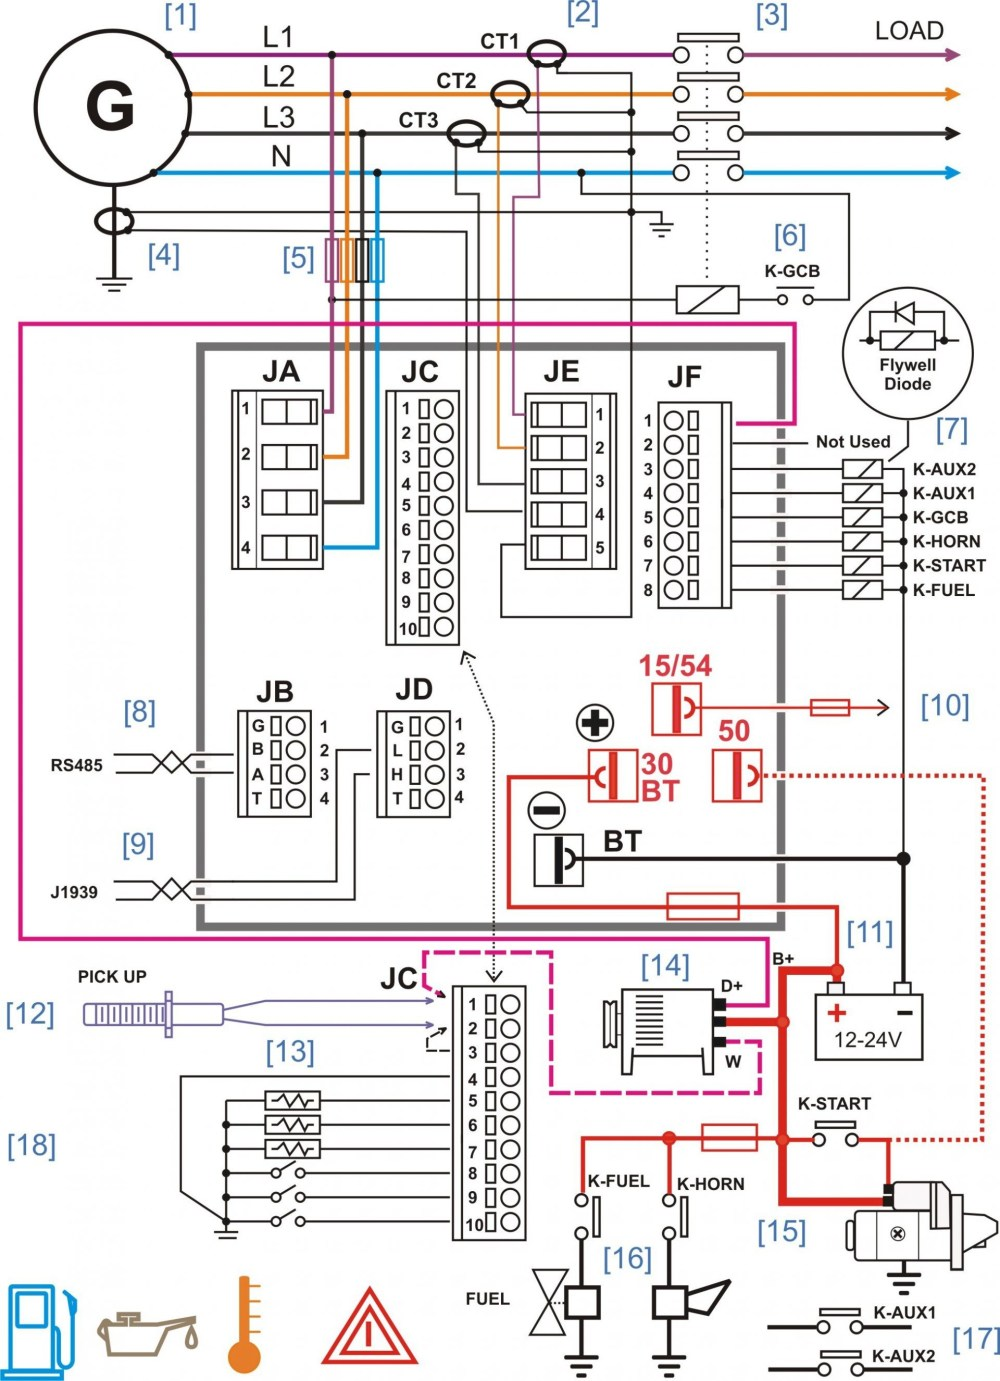 medium resolution of car radio wiring diagram kenwood stereo kdc 210u within in delphi delco part number and diagram